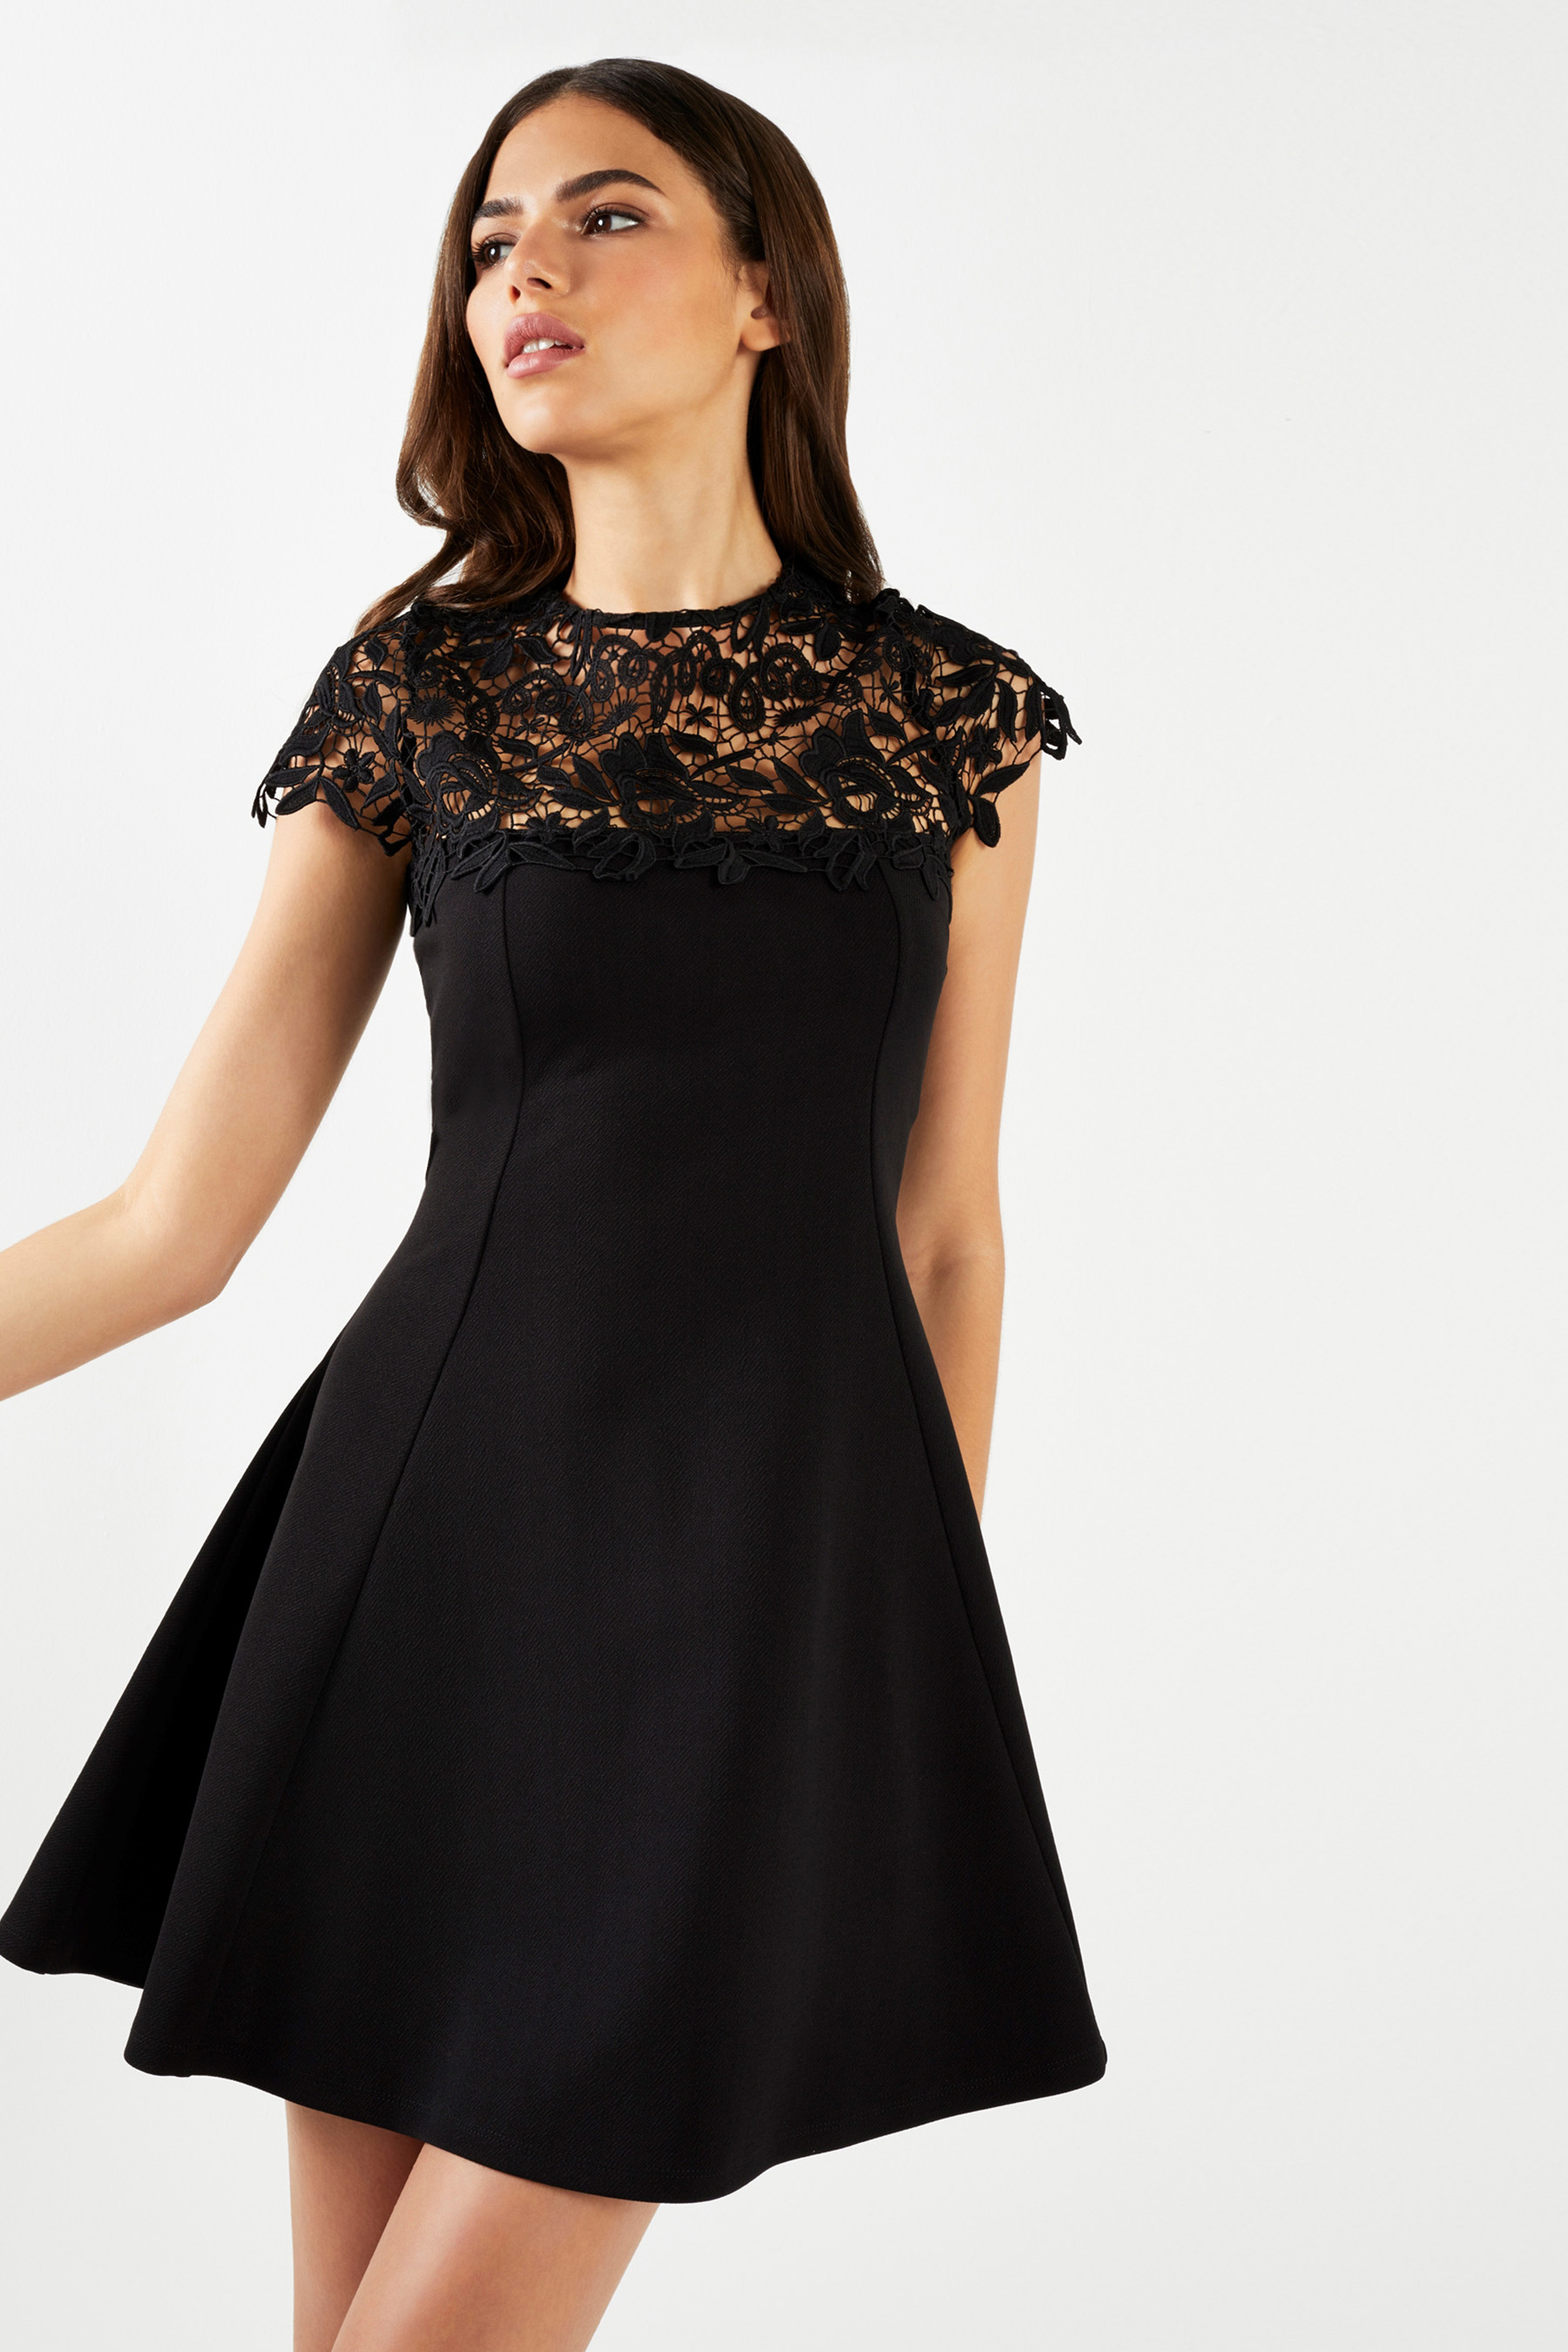 a7a23fc43786 Womens Lipsy Lace Top Skater Dress - Black | Products | Lace top ...